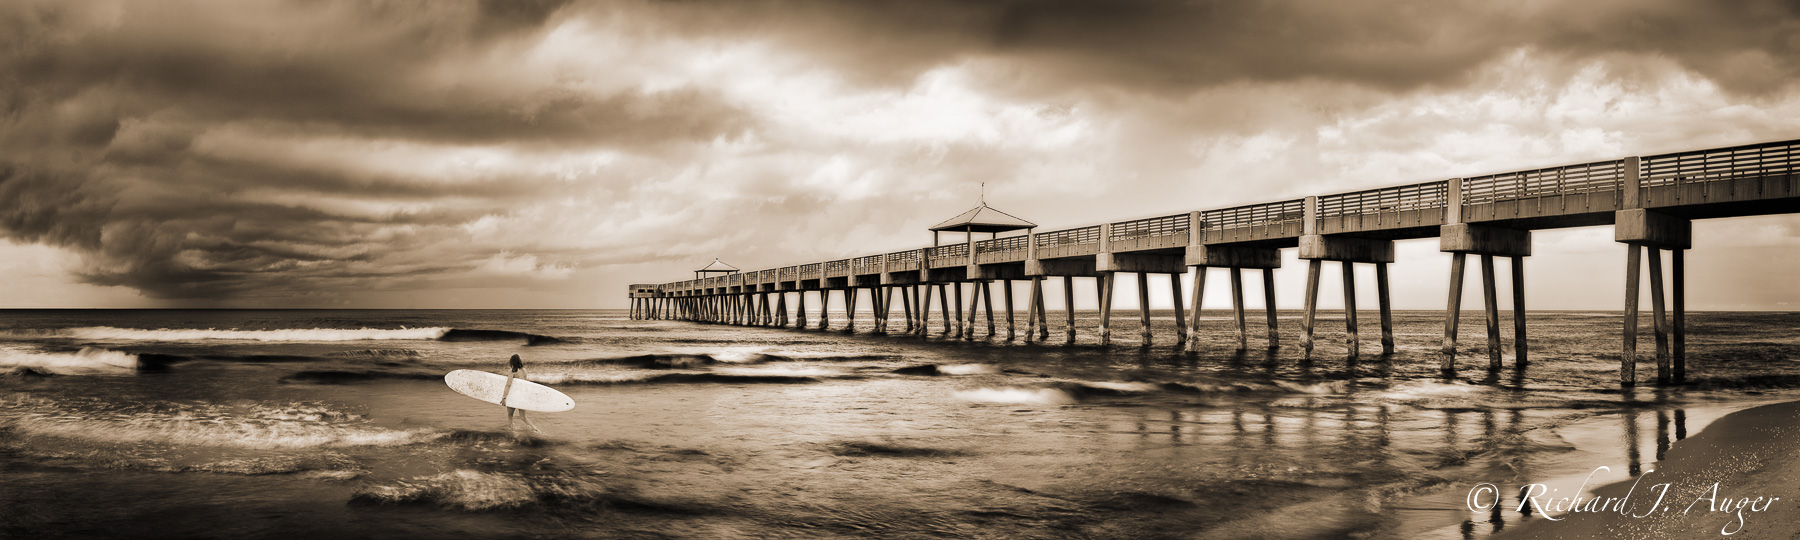 Juno Beach Pier, Florida, Palm Beach, Surfer Girl, Storm, Photograph, Photographer, Ocean, Waves